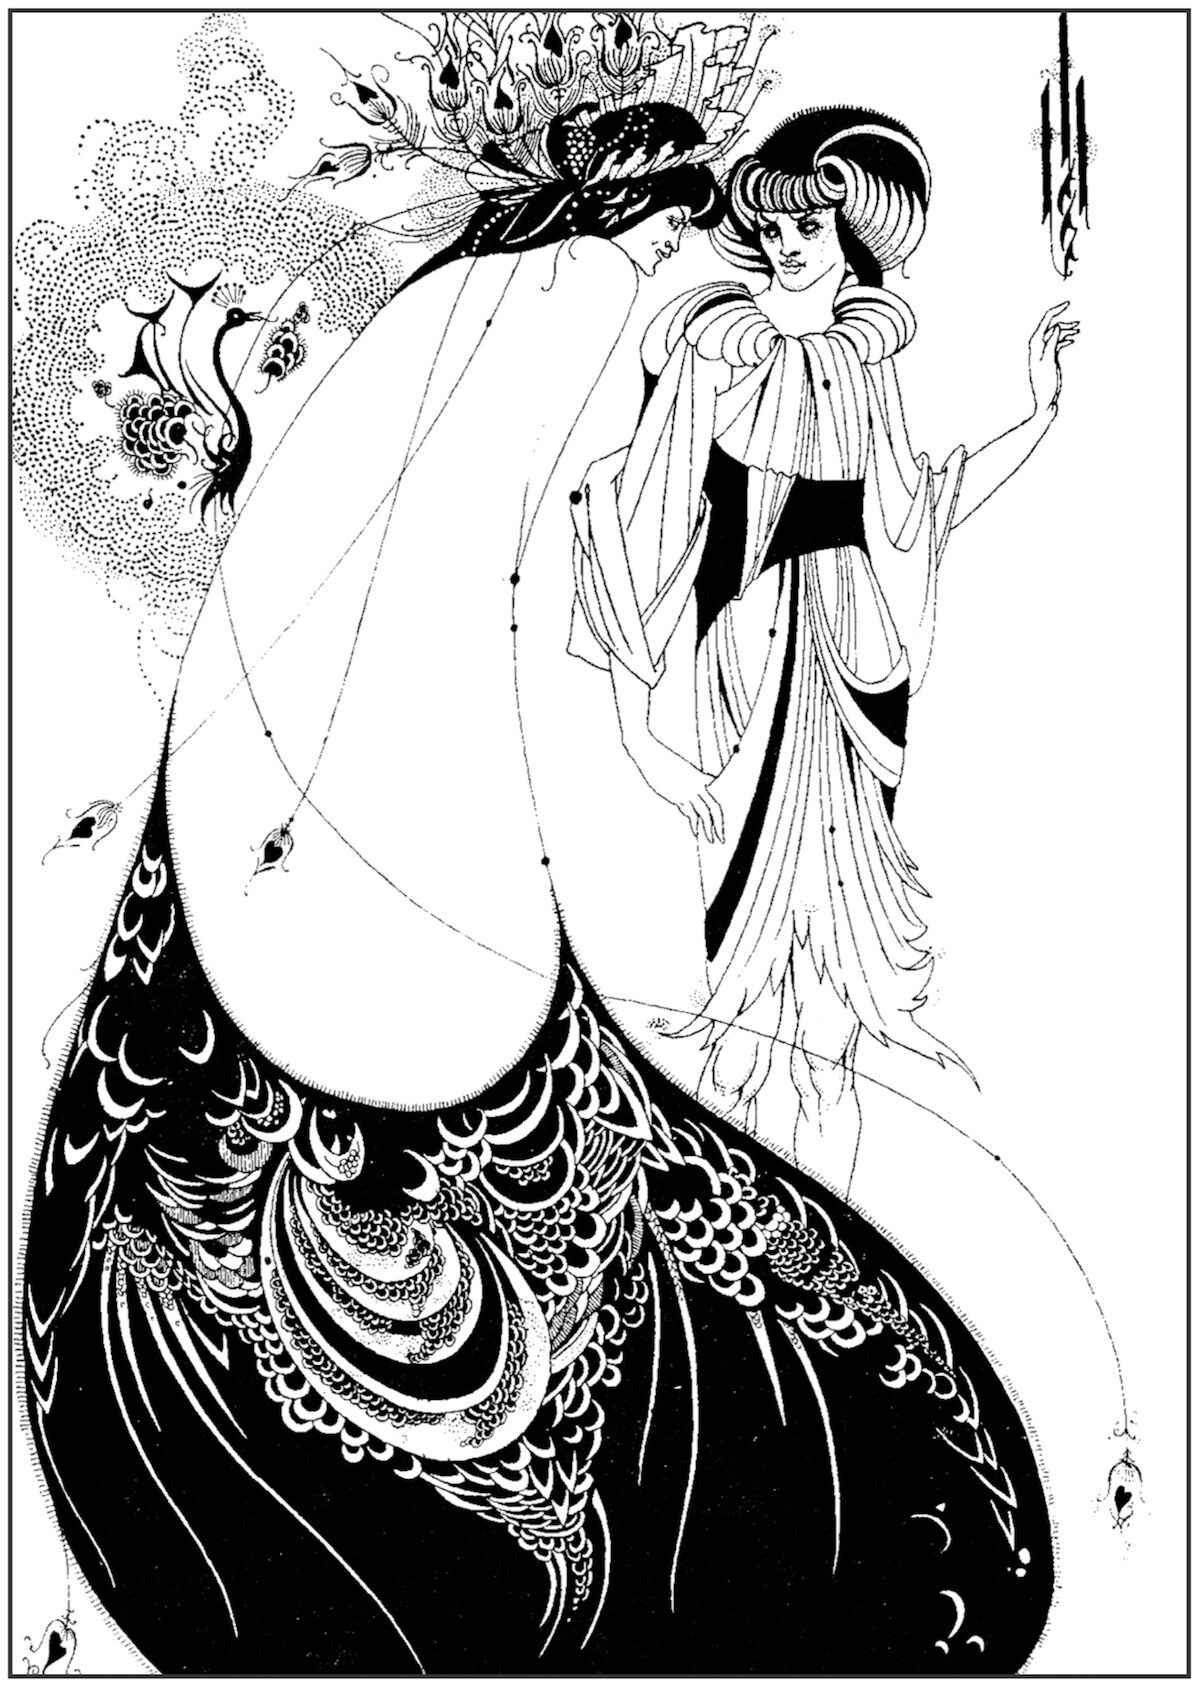 A coloring book page based on one of Aubrey Beardsley's drawings illustrating Salomé by Oscar Wilde. Courtesy the British Library.